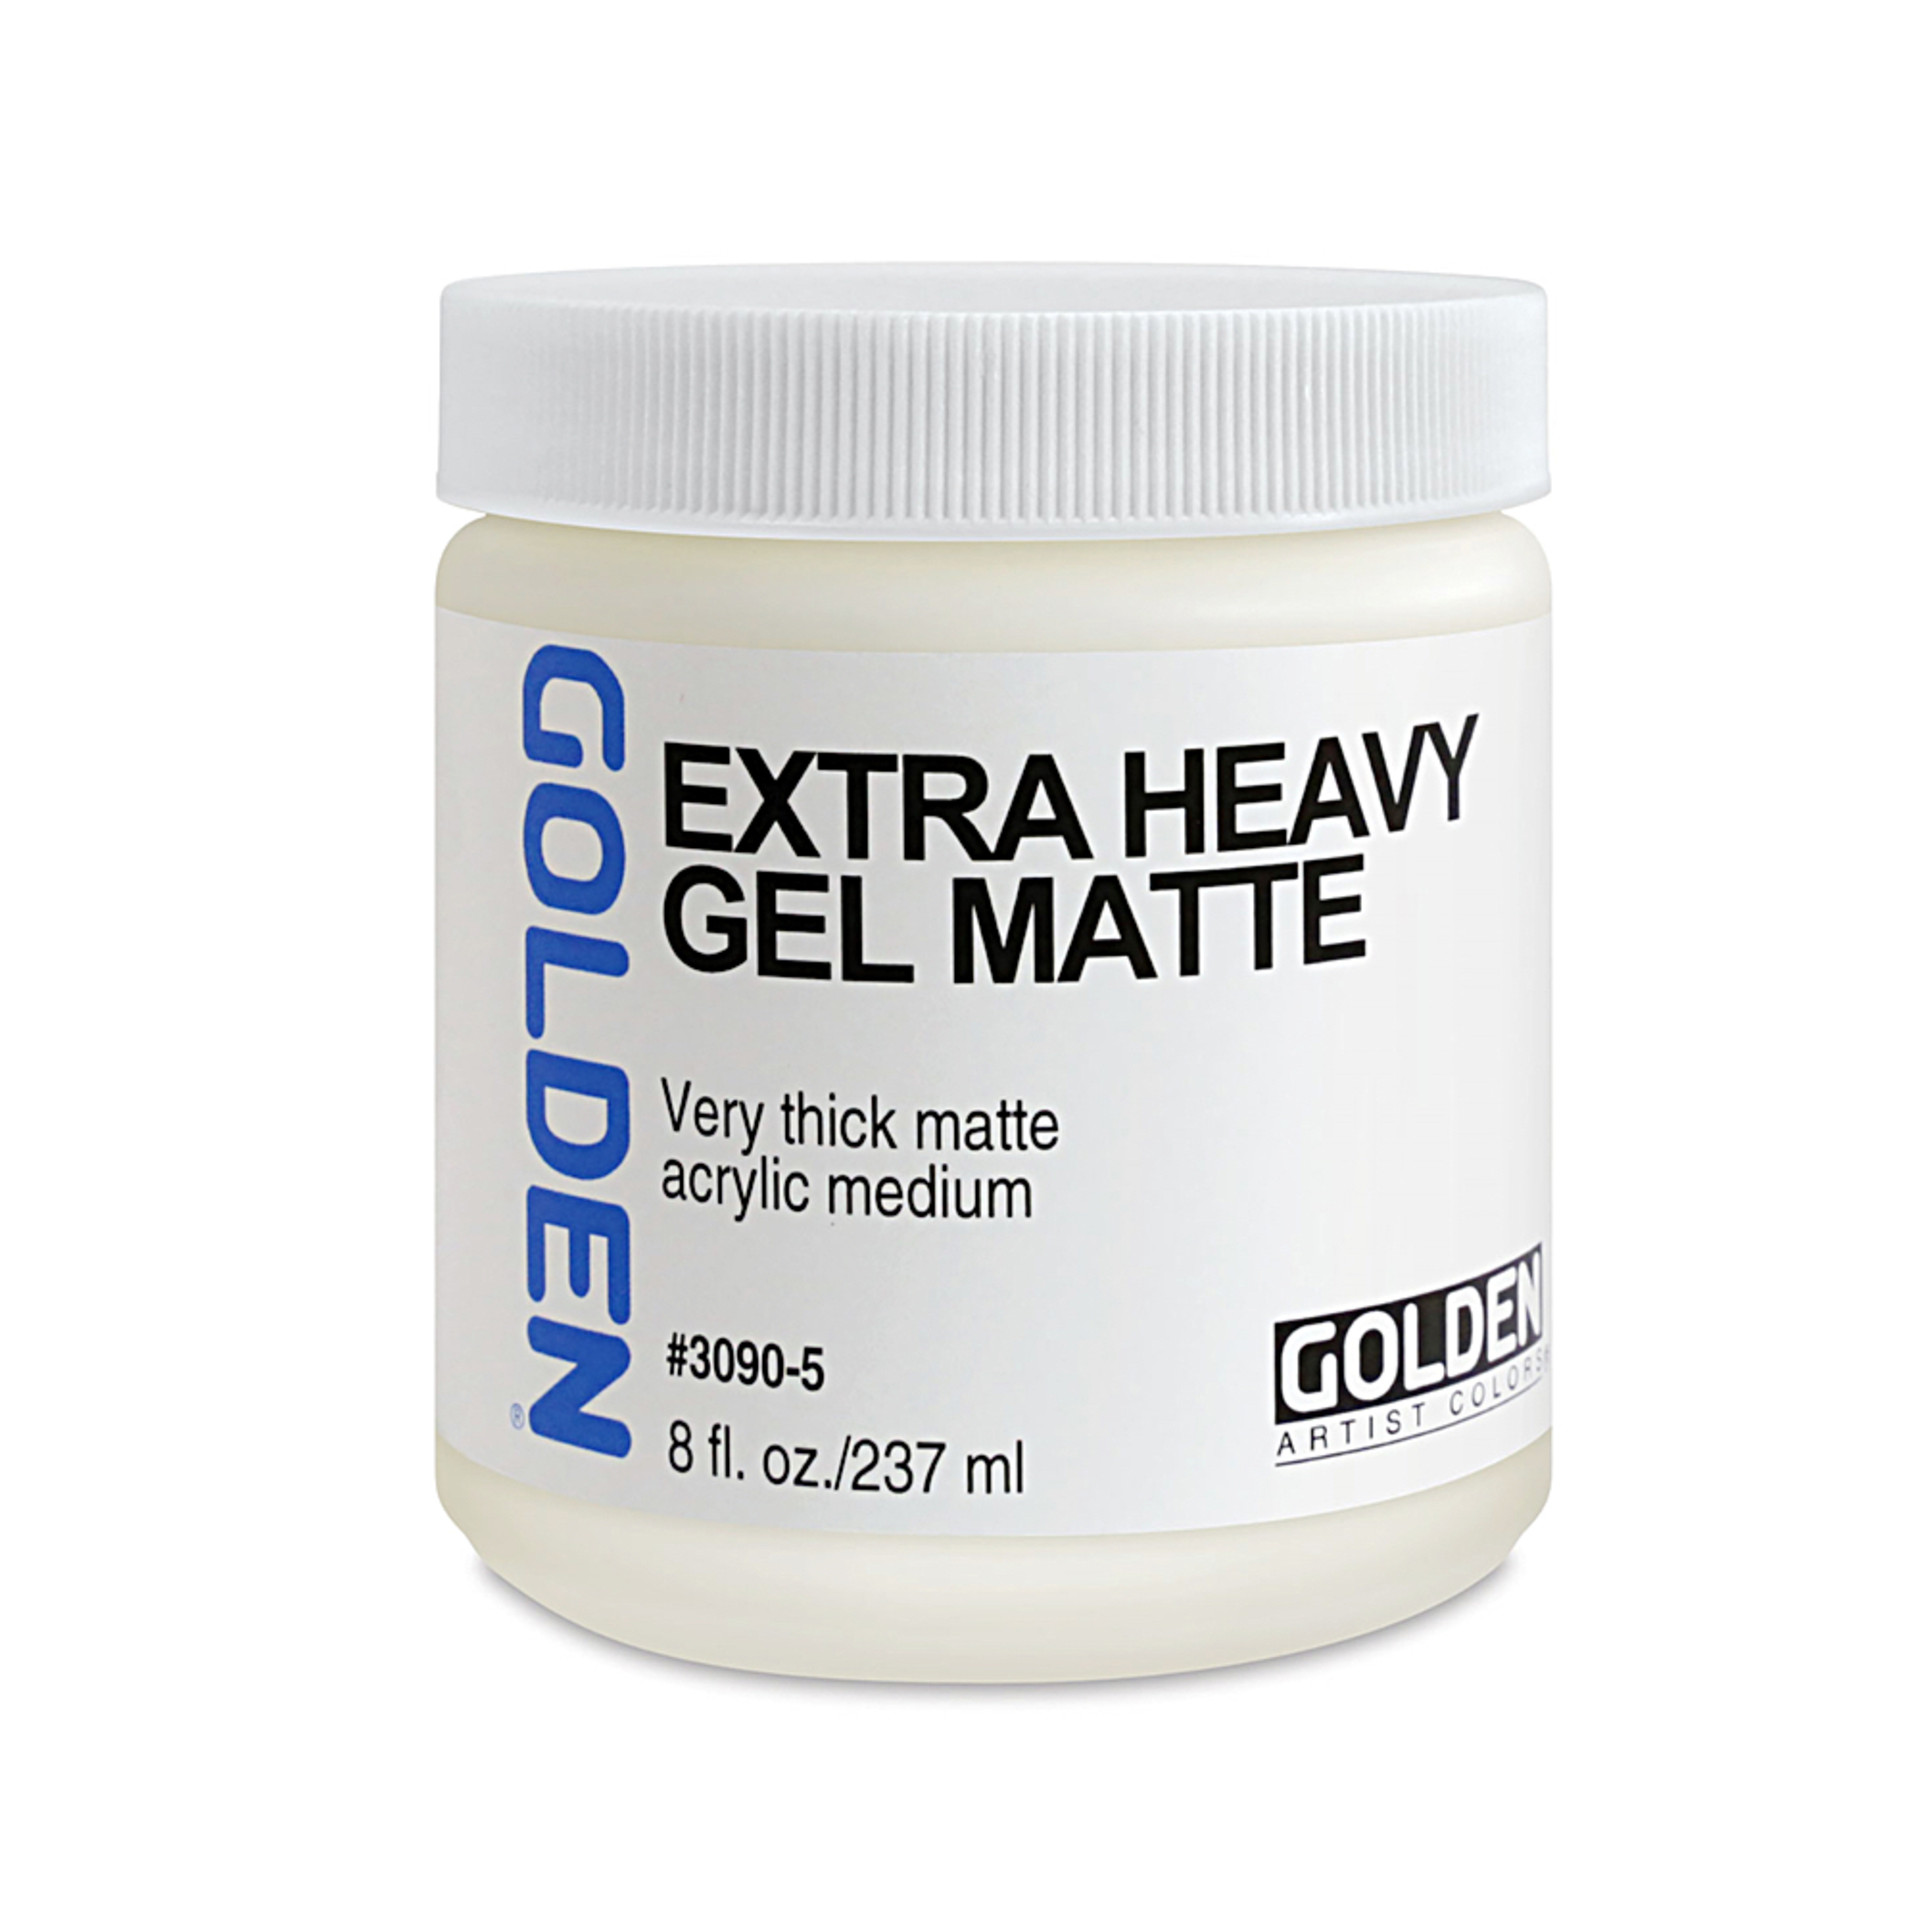 Golden 8oz Extra Heavy Gel Matte